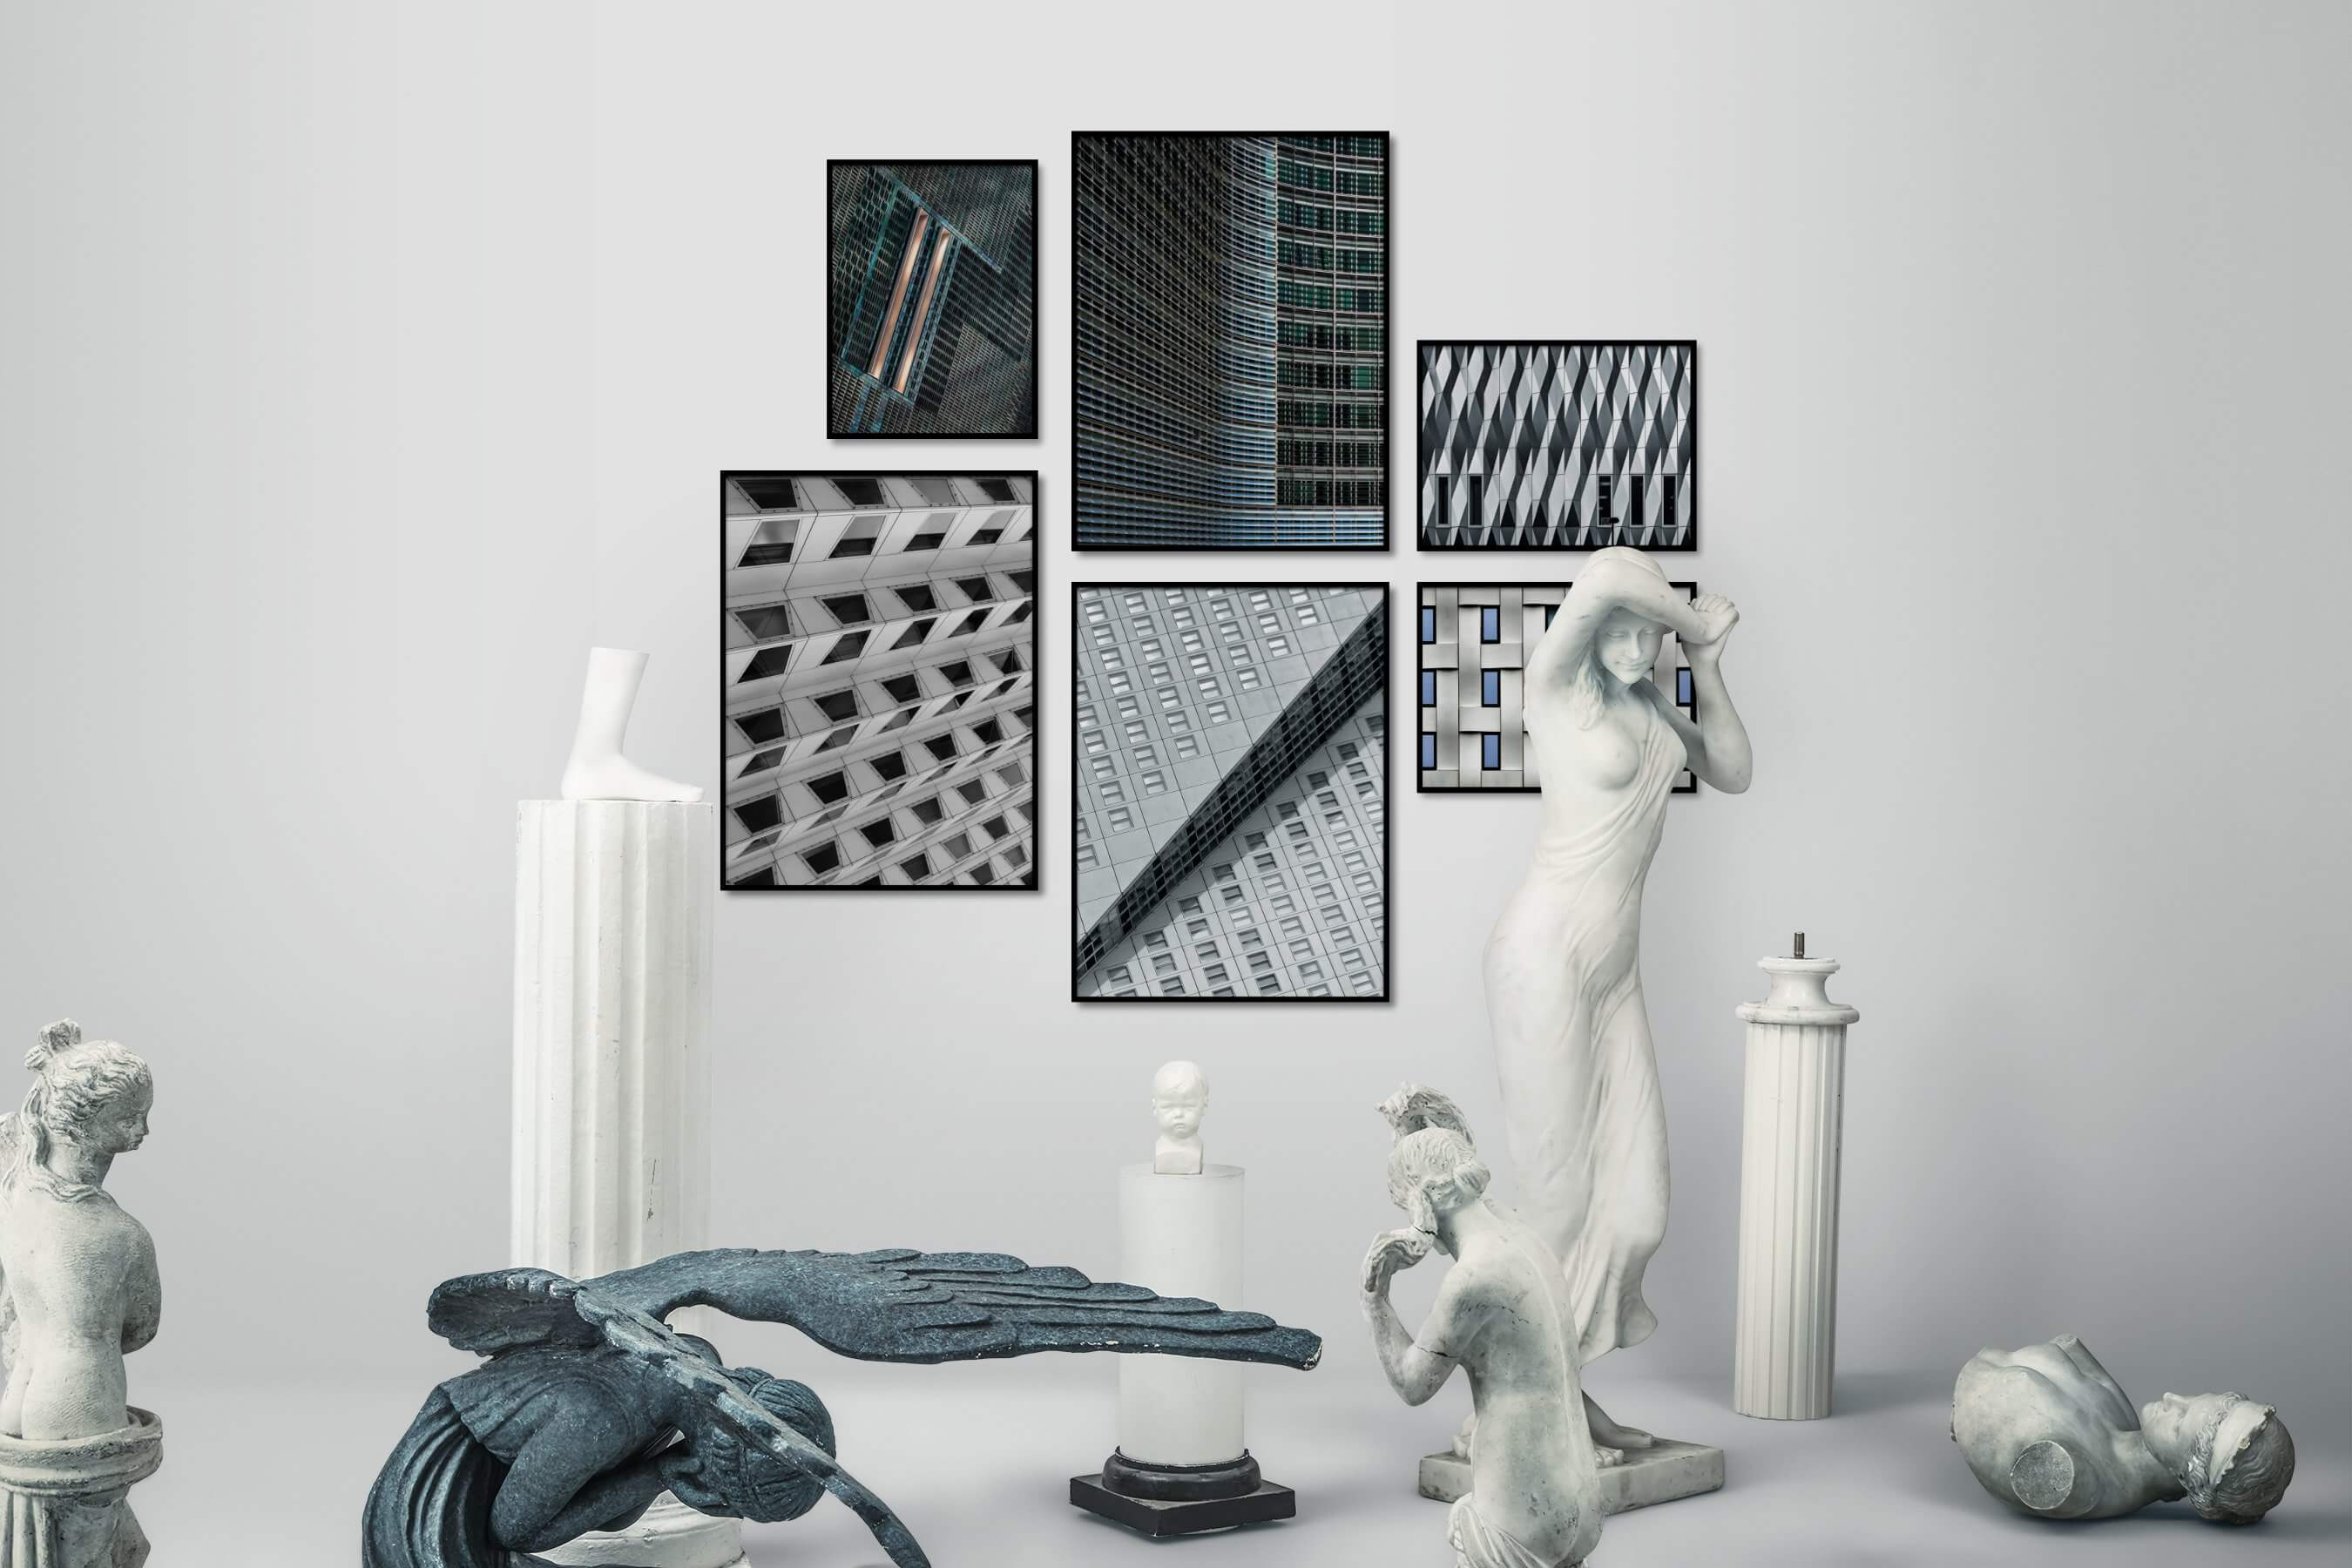 Gallery wall idea with six framed pictures arranged on a wall depicting For the Maximalist, Black & White, For the Moderate, and City Life